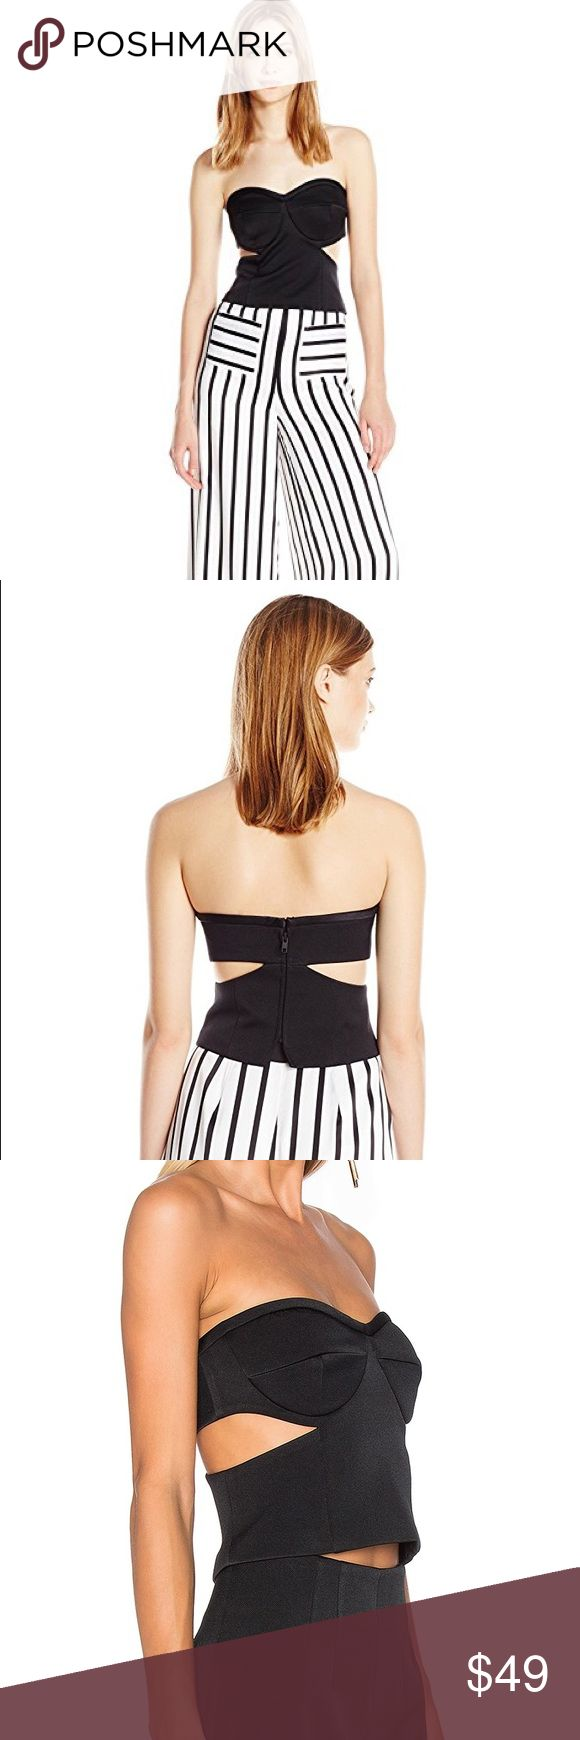 NWT Kendall and Kylie Bustier NWT Kendall and Kylie Tuxedo Cutout Strapless Bustier. Color: Black. Size: Medium. Feel free to ask any questions or make a reasonable offer. Kendall & Kylie Tops